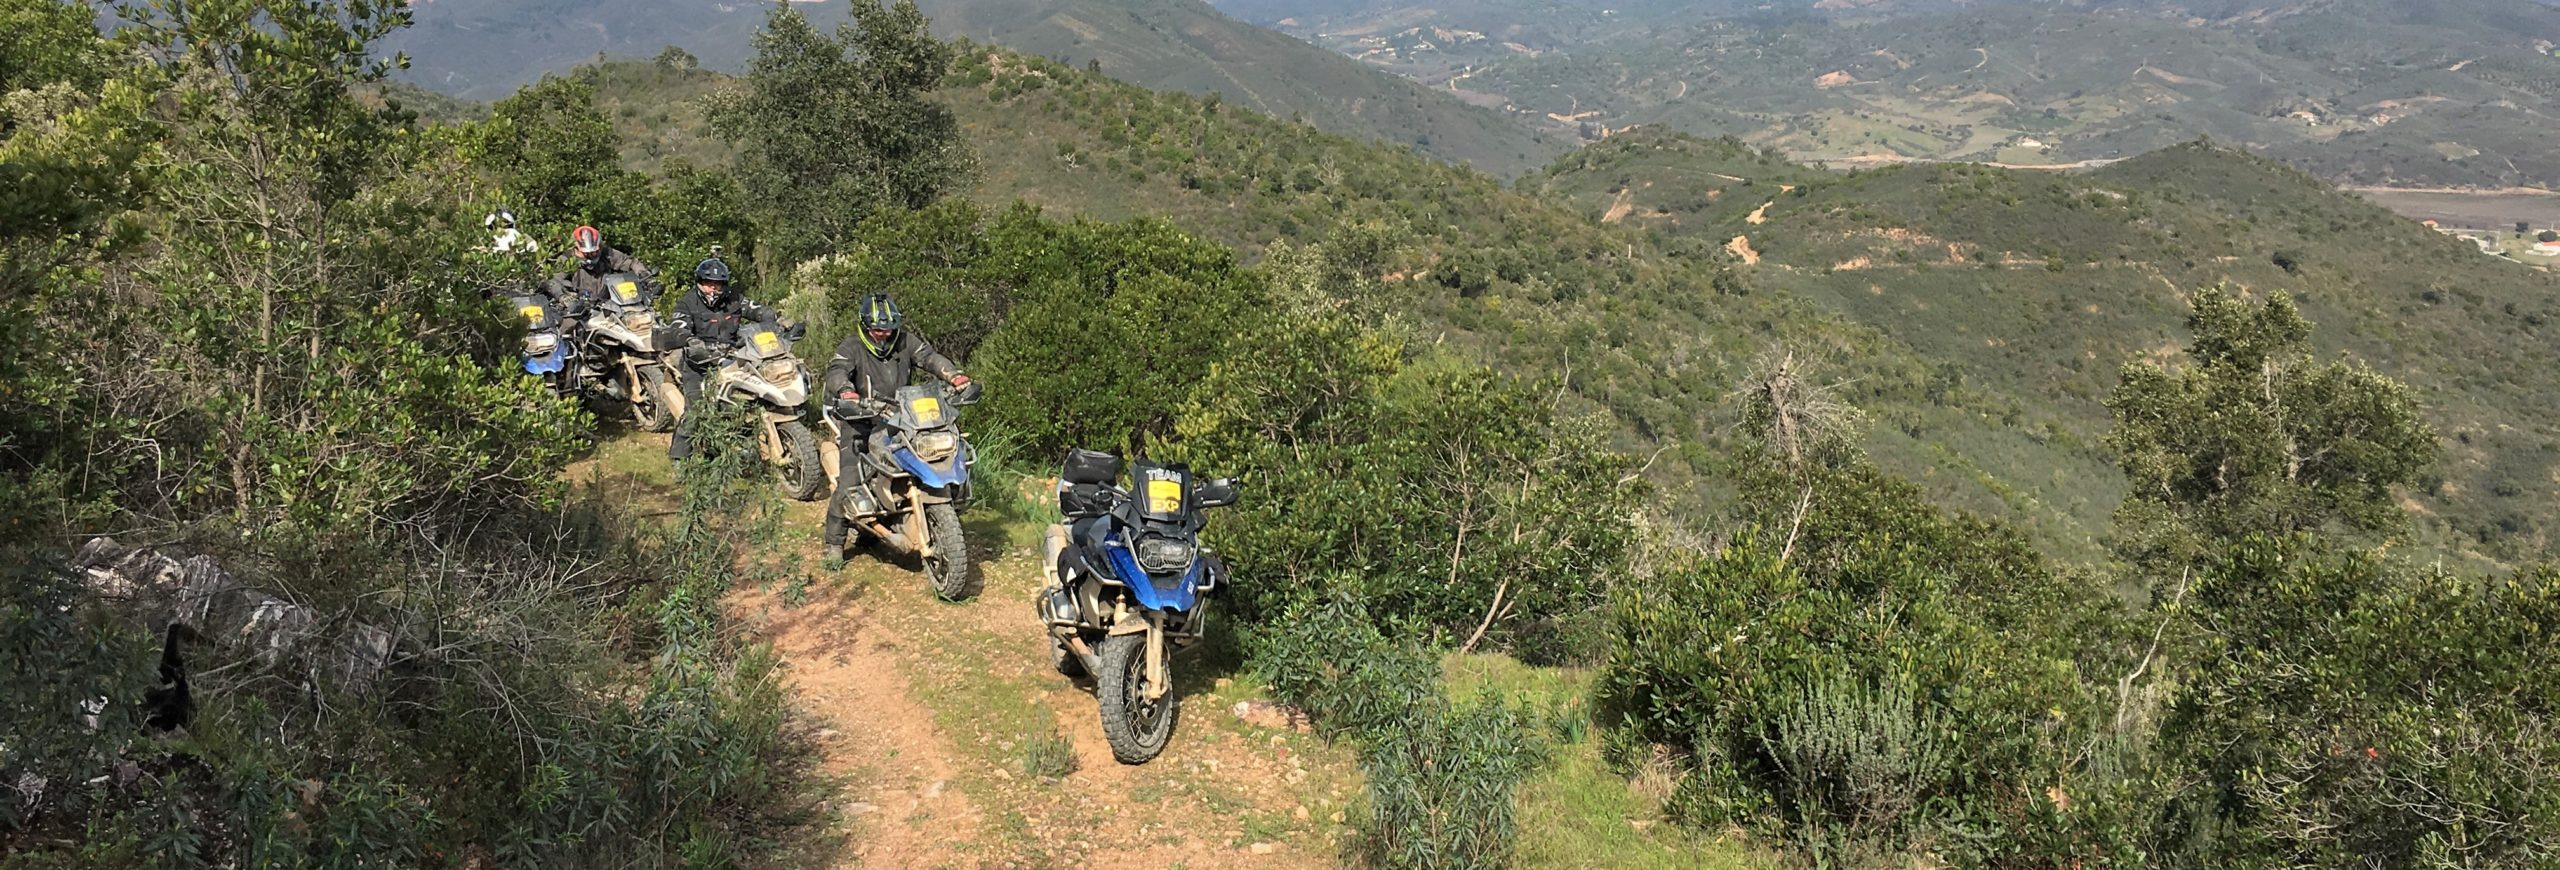 Touratech Experience Portugal 2019, February 9-16